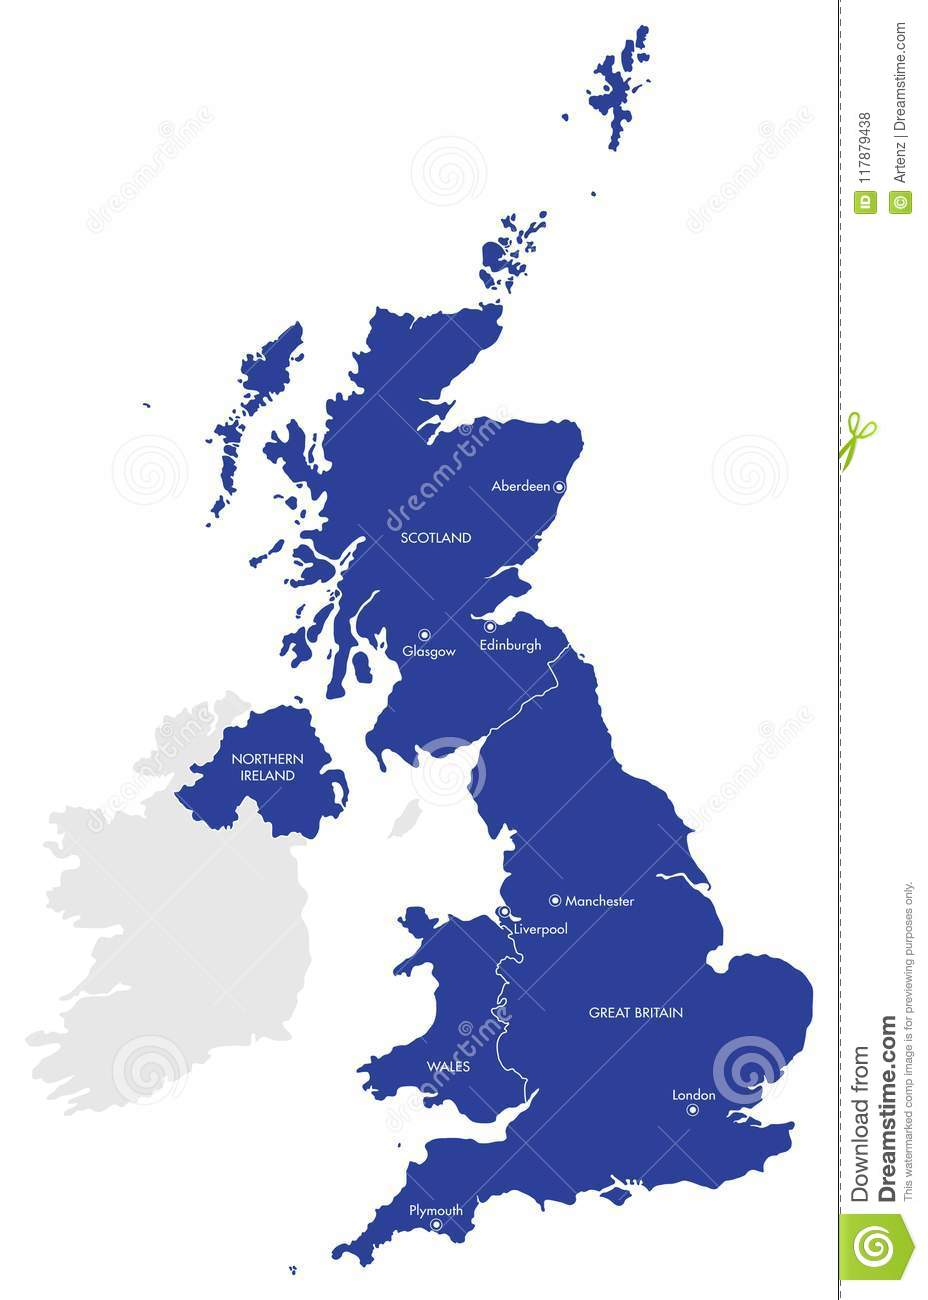 Map Of Uk And Ireland With Cities.Map Of The United Kingdom With Cities And Counties Stock Vector